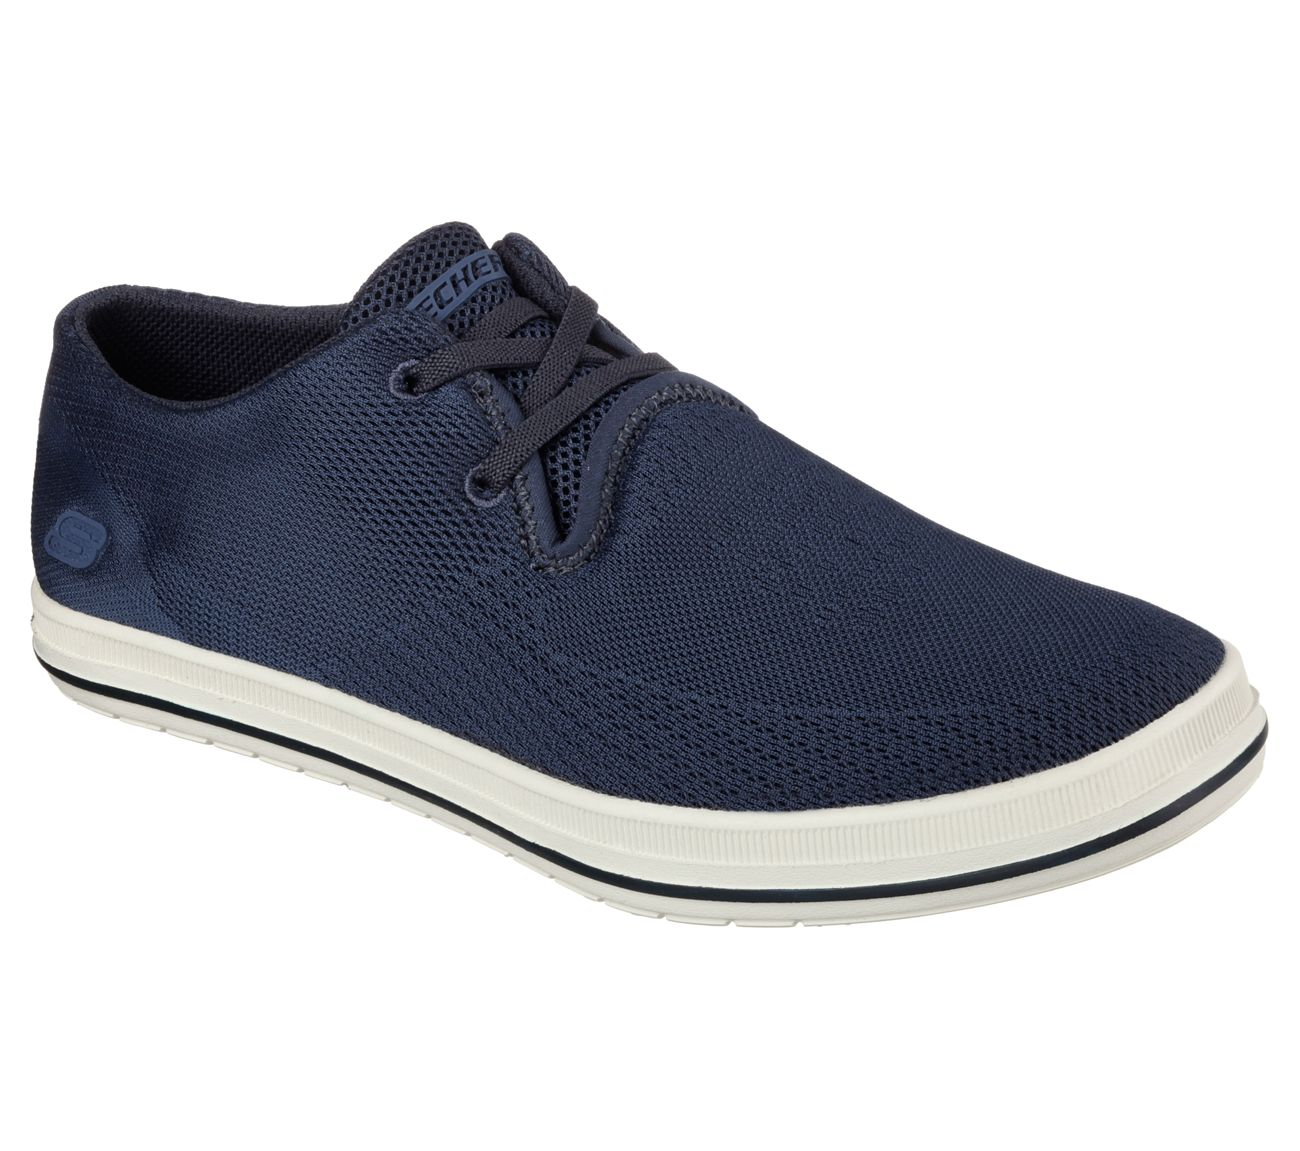 Relaxed fit define volkan mens casual shoes skechers